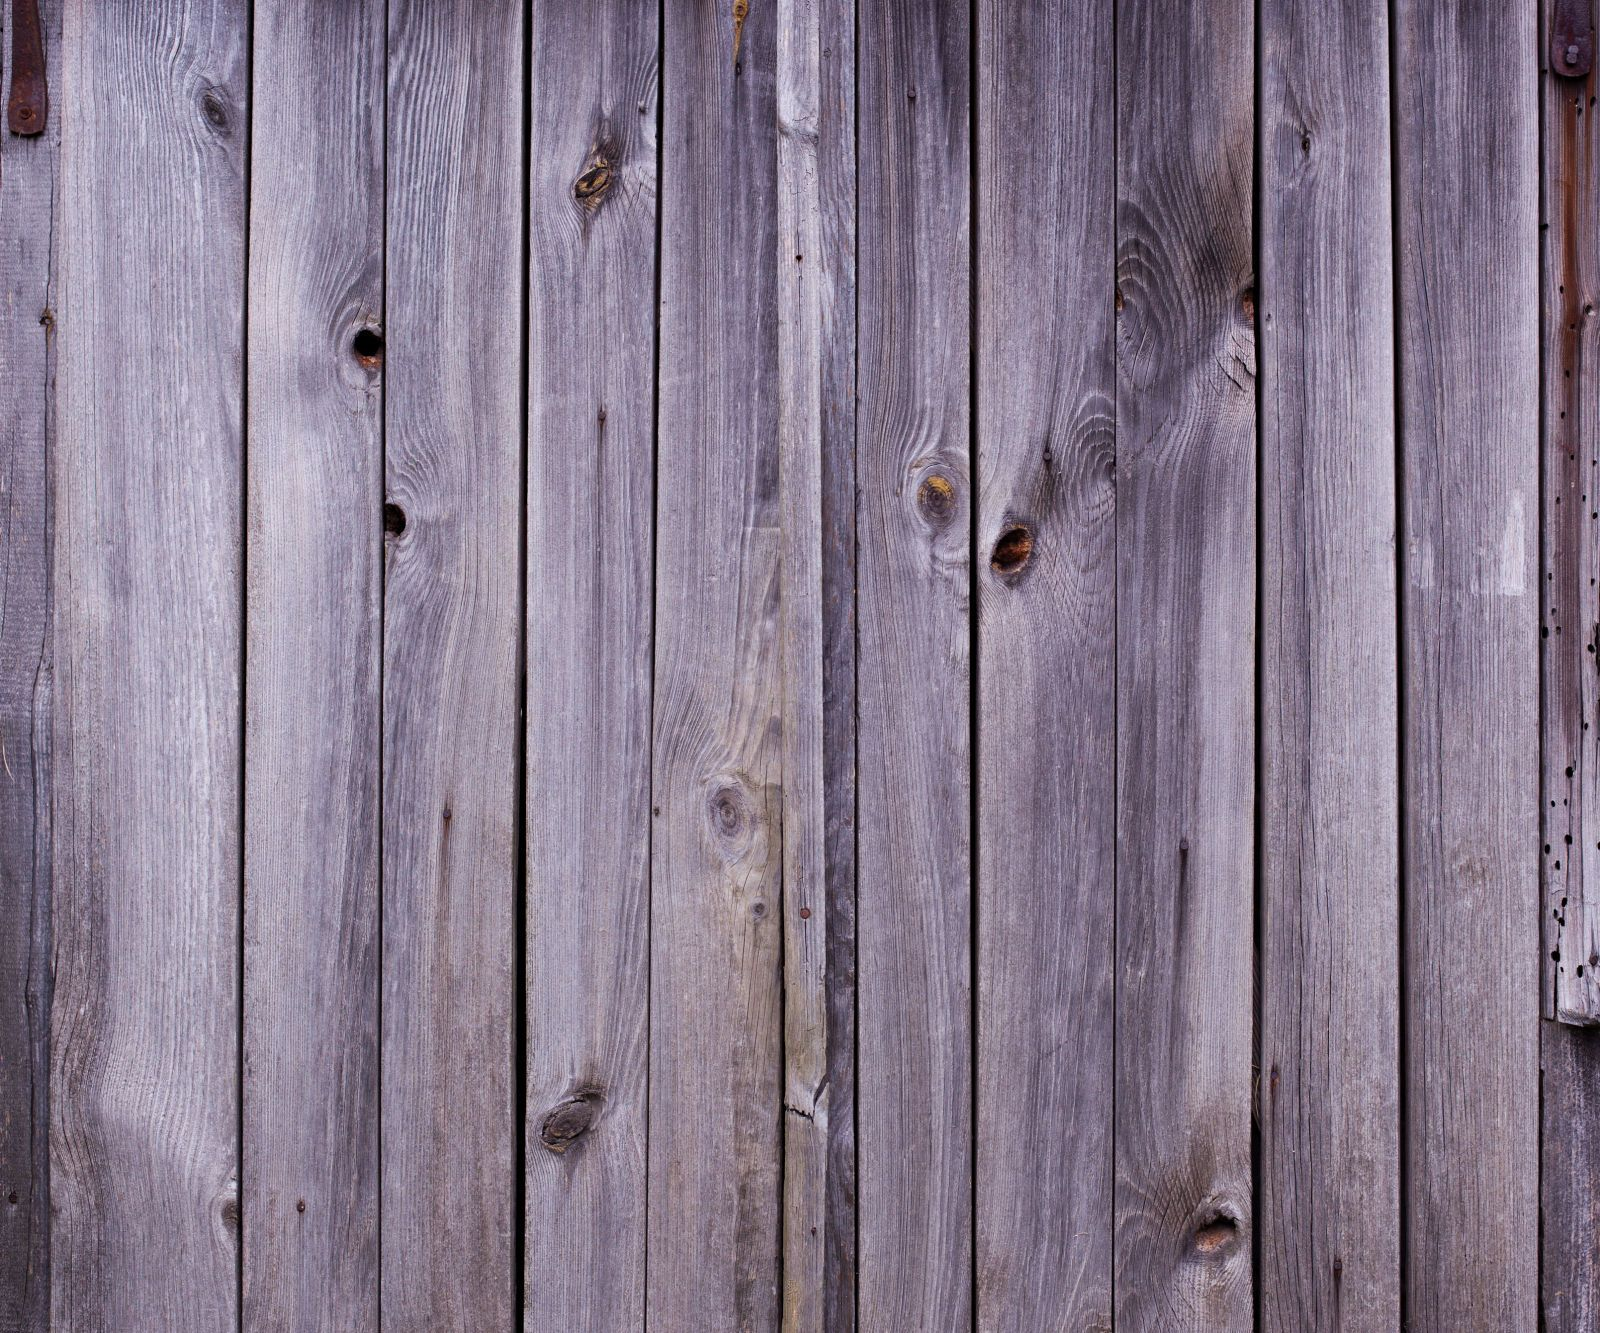 Vintage Wooden Wall Texture Texture Wooden Walls Textured Walls